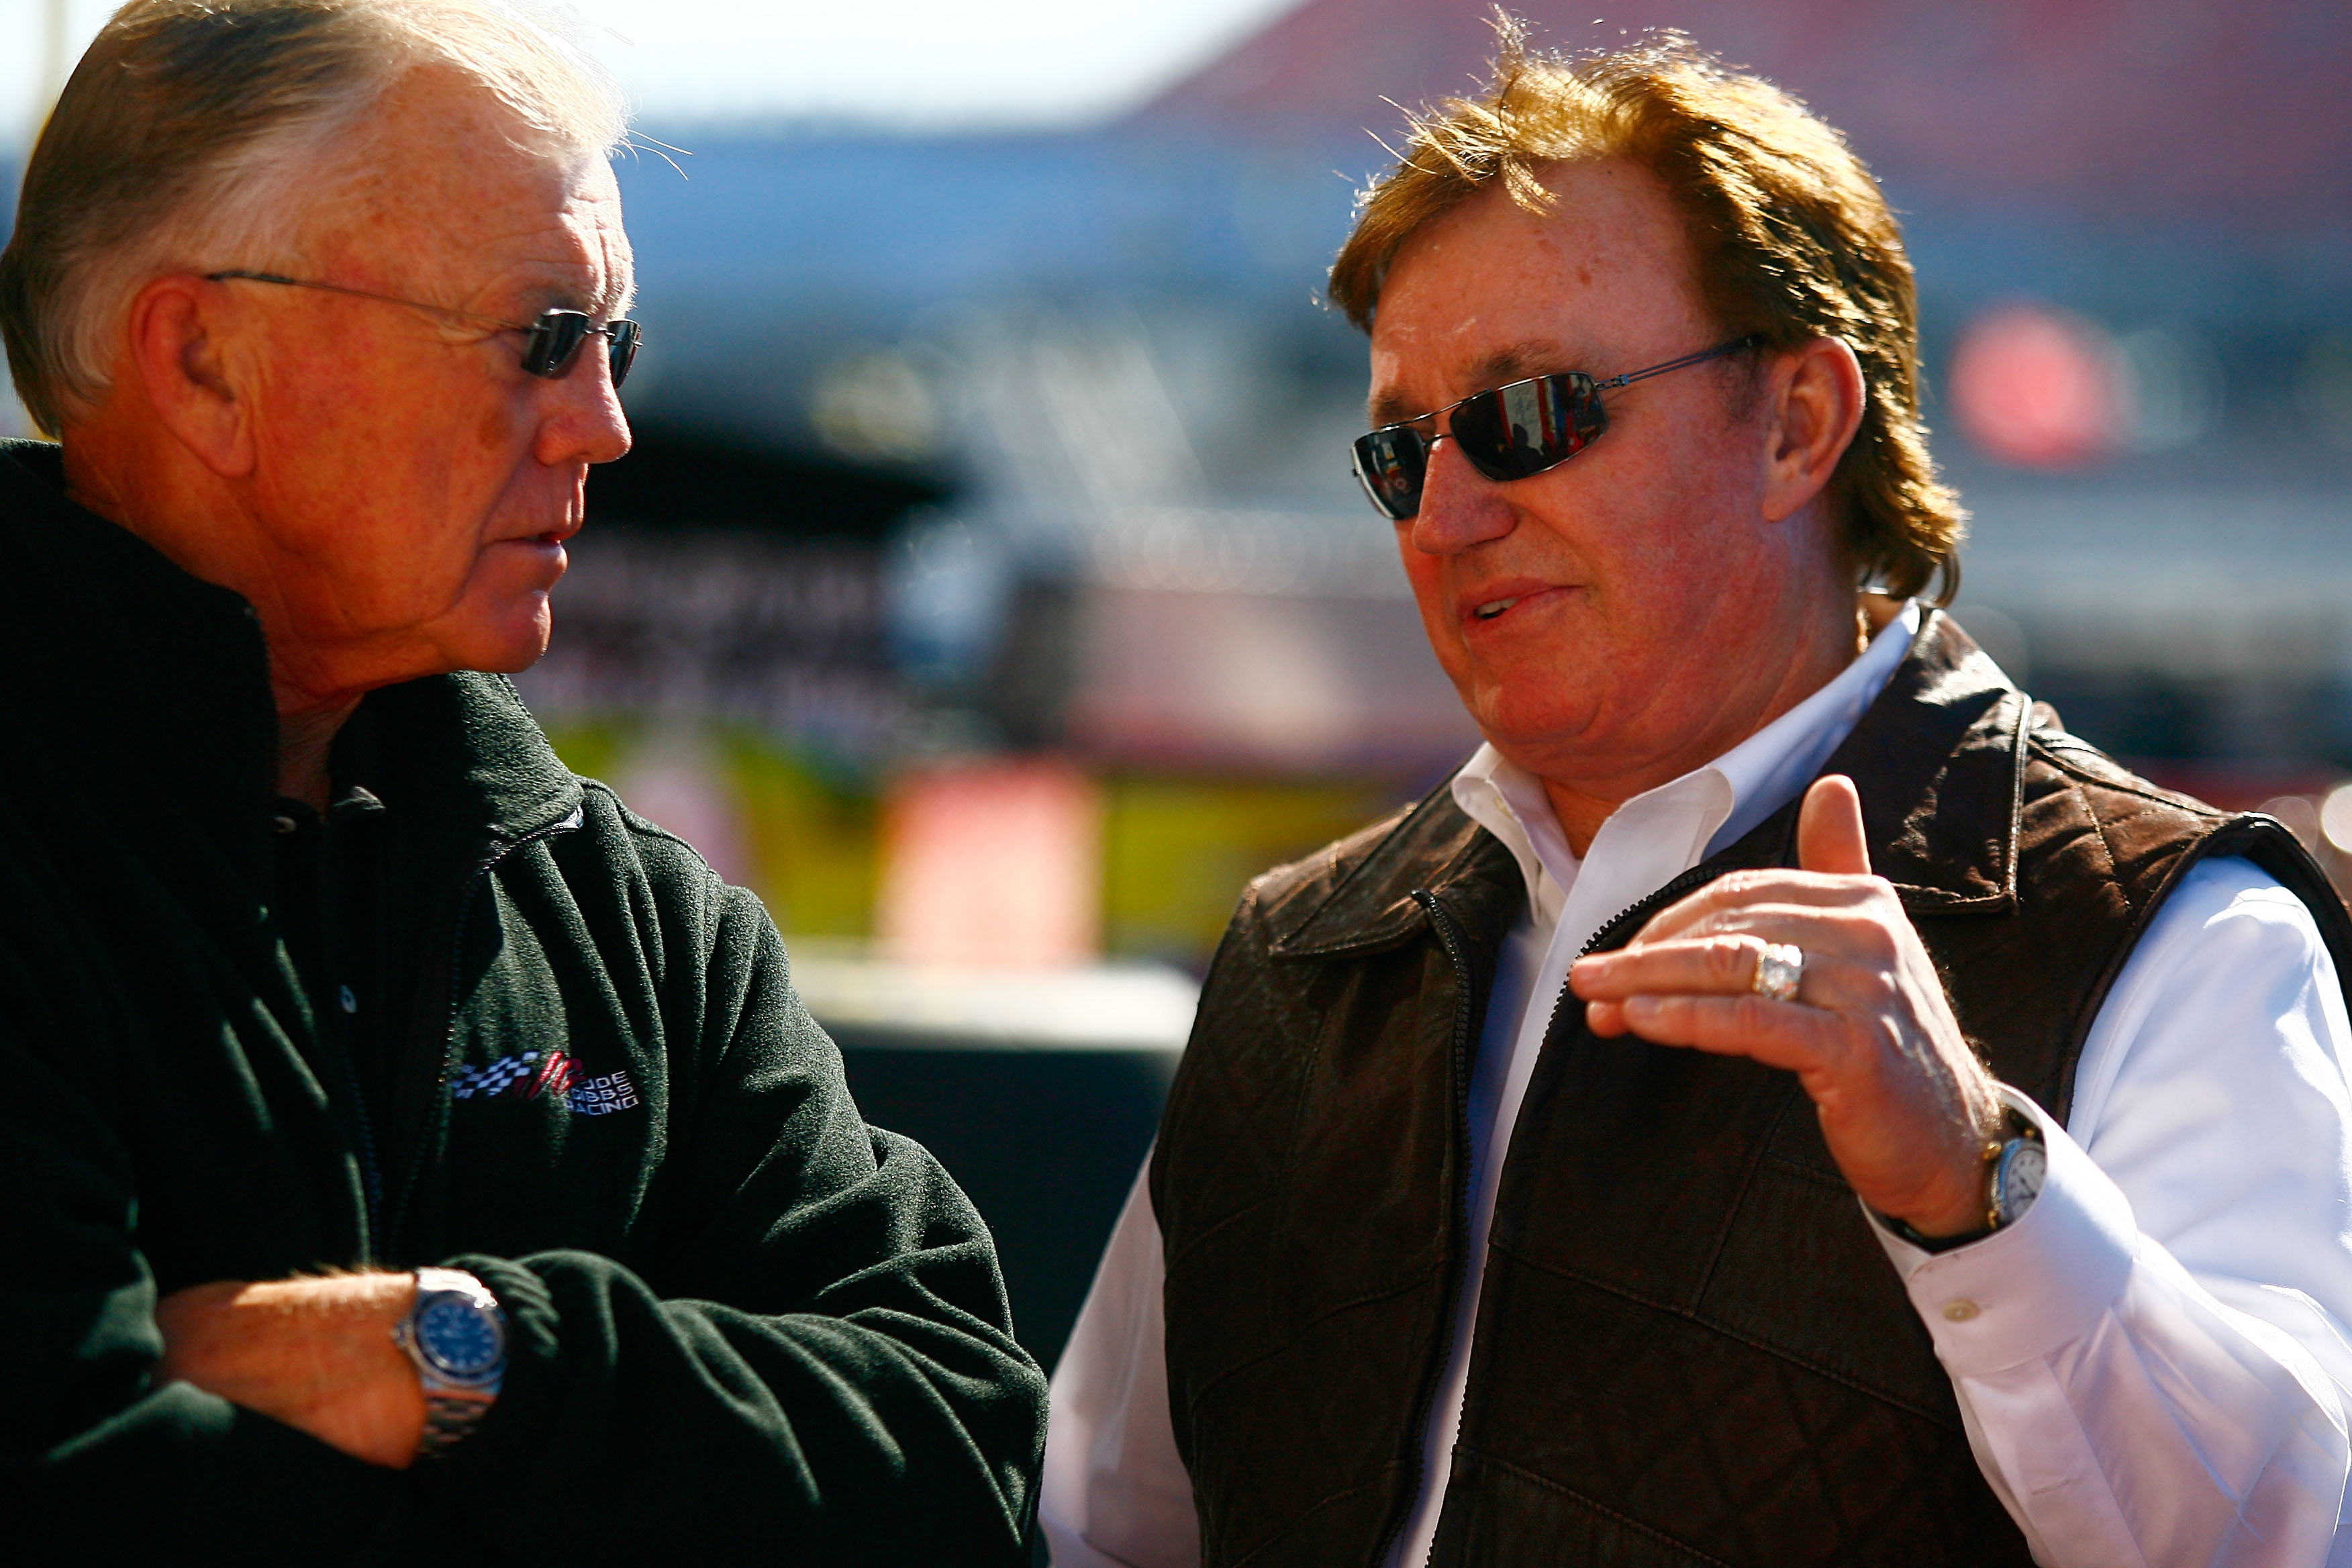 TALLADEGA, AL - OCTOBER 29:  Team owners Joe Gibbs (L) and Richard Childress talk in the garage area during practice for the NASCAR Sprint Cup Series AMP Energy Juice 500 at Talladega Superspeedway on October 29, 2010 in Talladega, Alabama.  (Photo by Jas